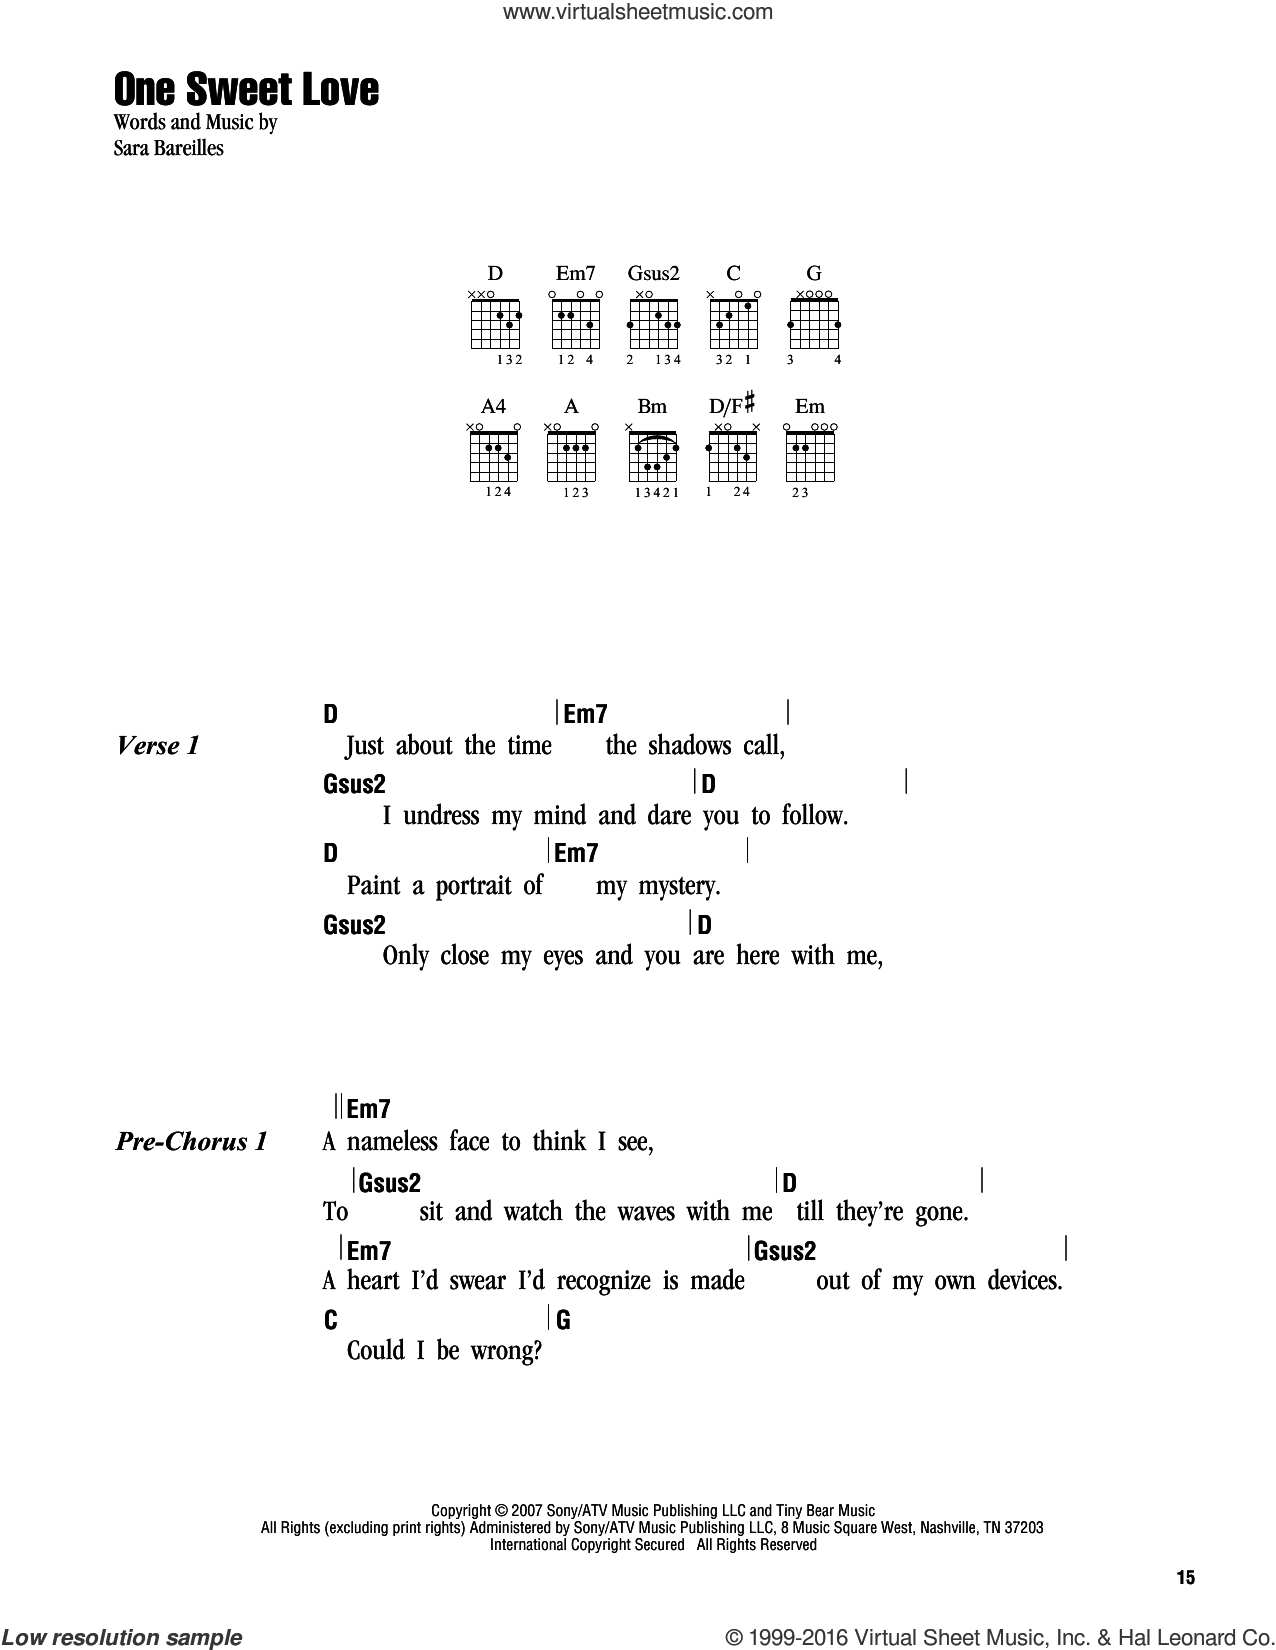 One Sweet Love sheet music for guitar (chords) by Sara Bareilles. Score Image Preview.